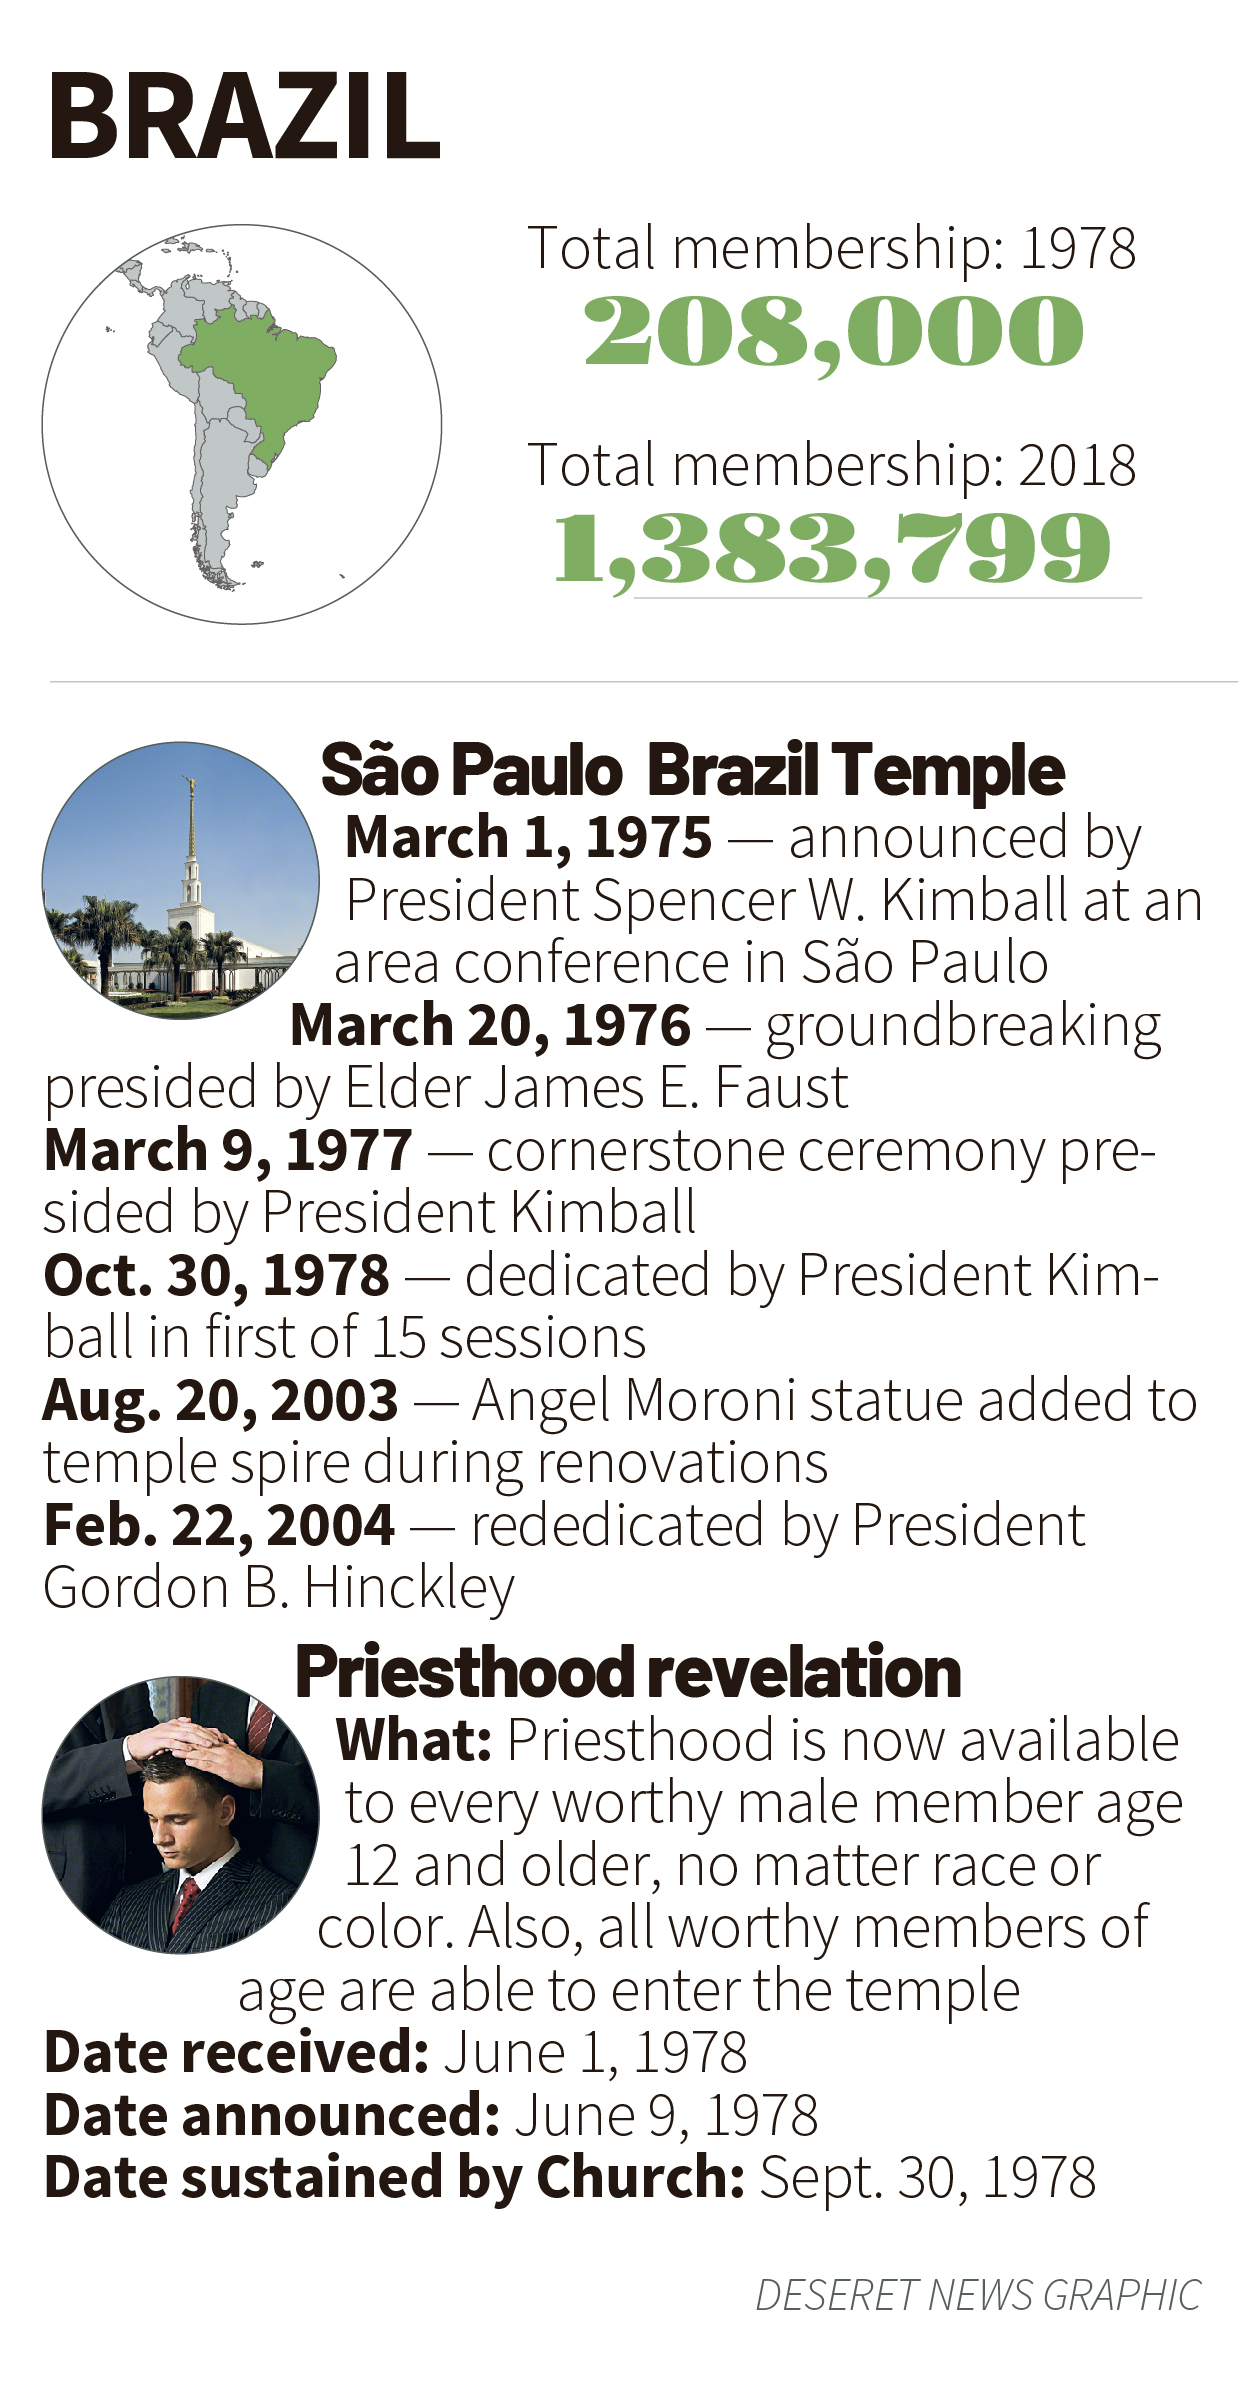 Brazil in 1978: How the priesthood revelation and the Sao Paulo temple dedication served as catalysts